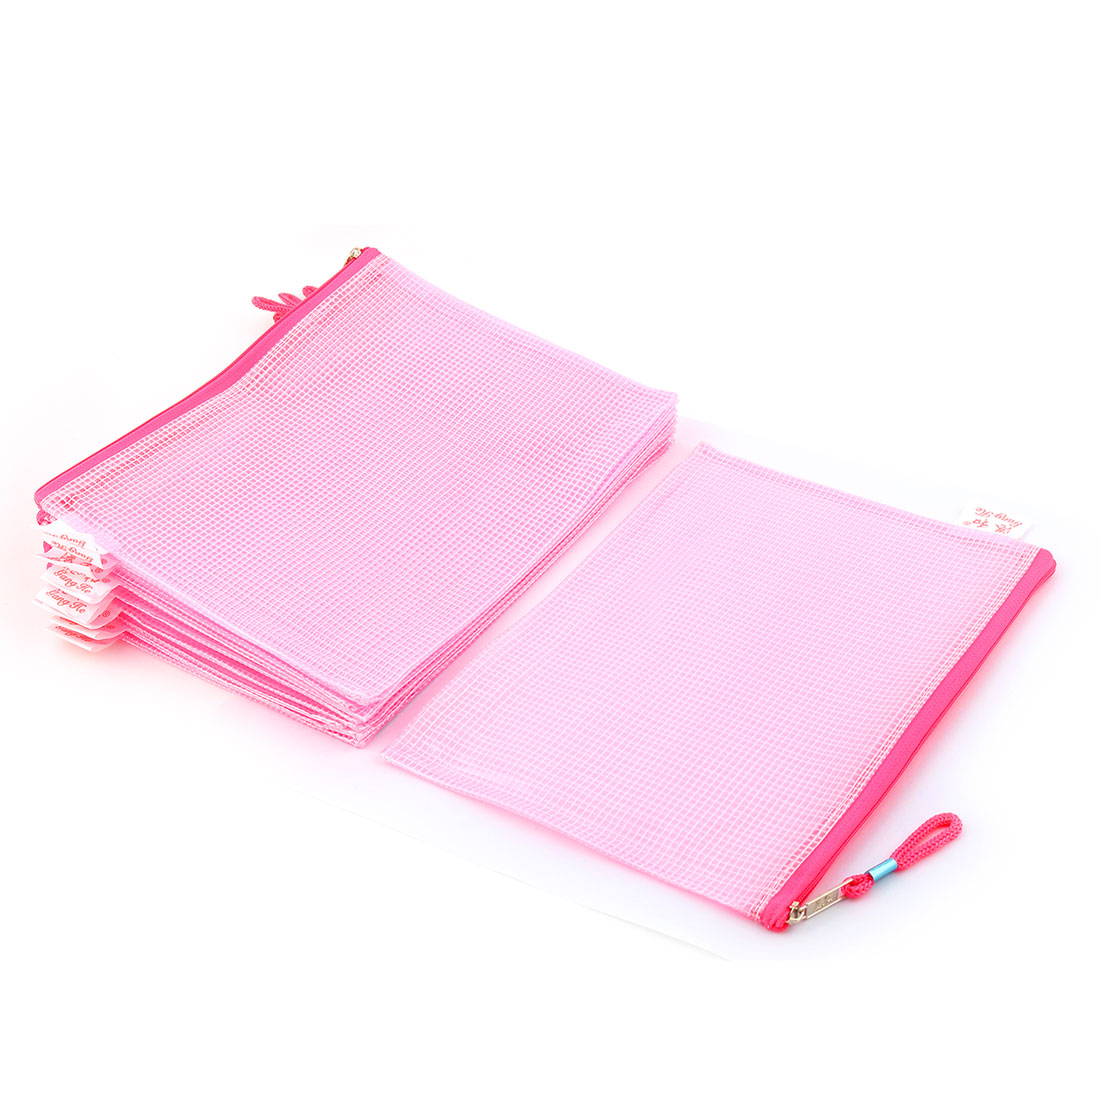 Office School Plastic Zippered A5 Size Paper Document File Storage Bag Fuchsia 10pcs